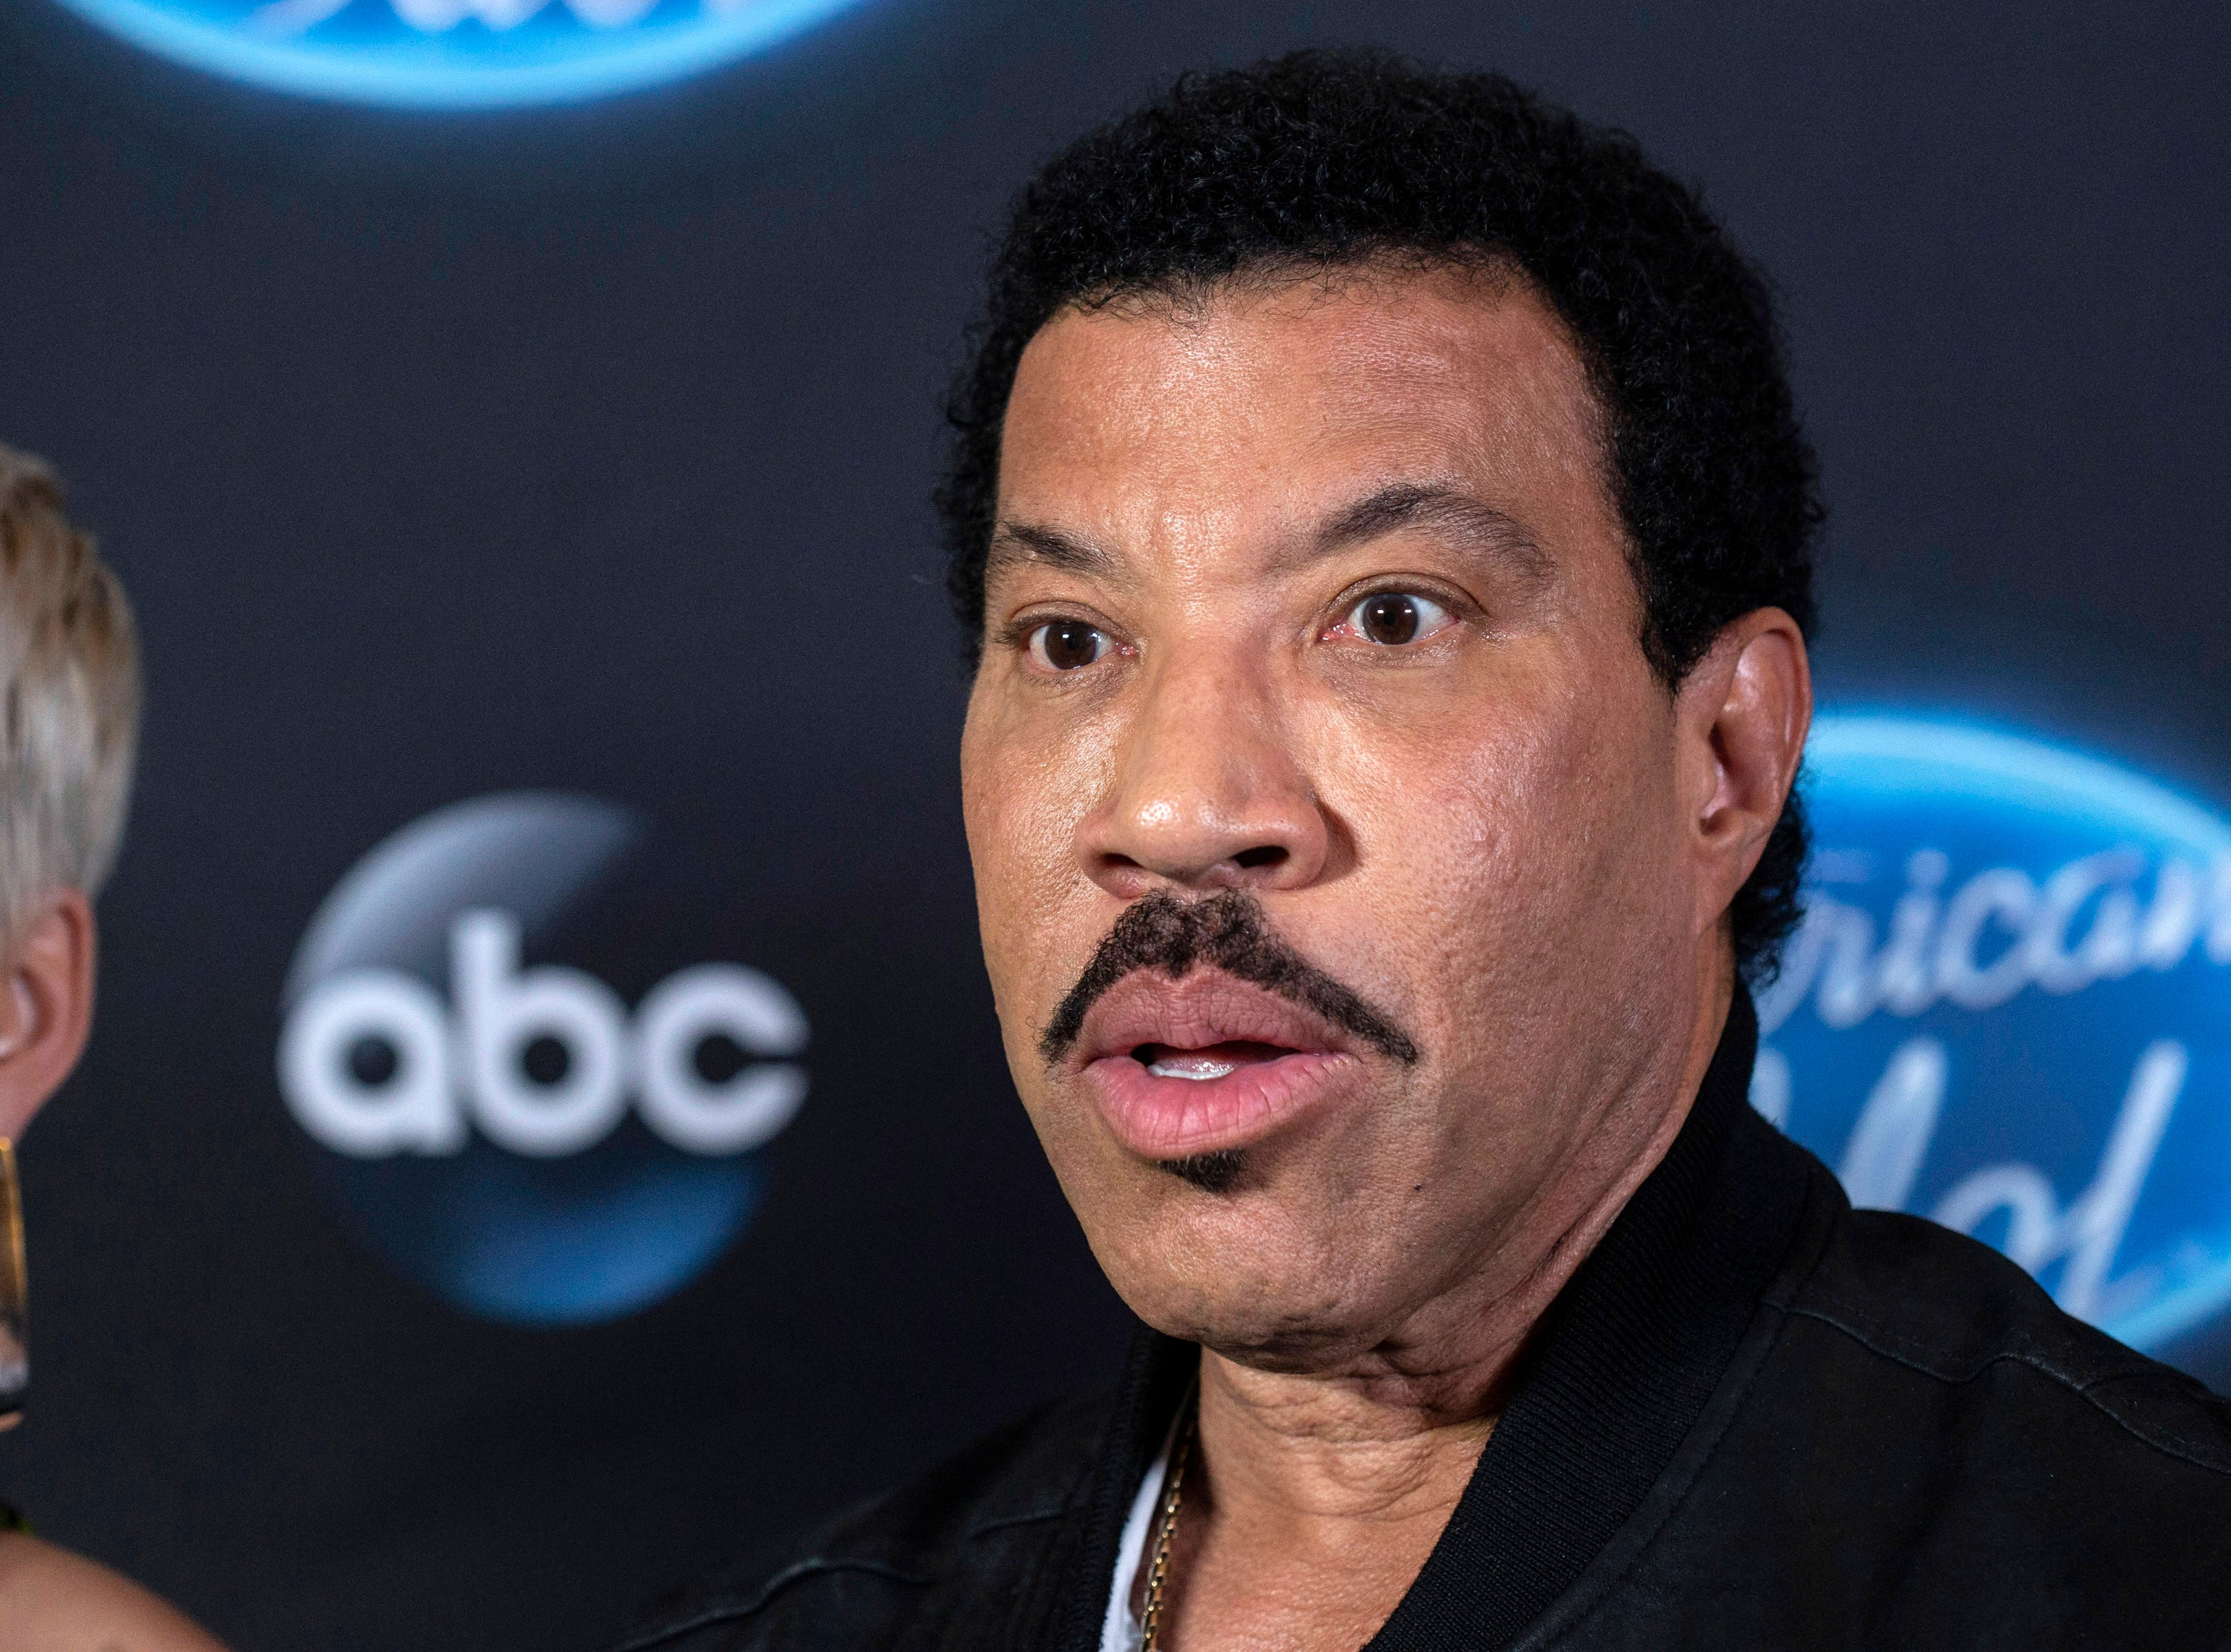 The legendary Lionel Richie was at the Ali Center on Tuesday night as American Idol made a stop in Louisville to audition aspiring musicians in Louisville, Ky. 10/23/18